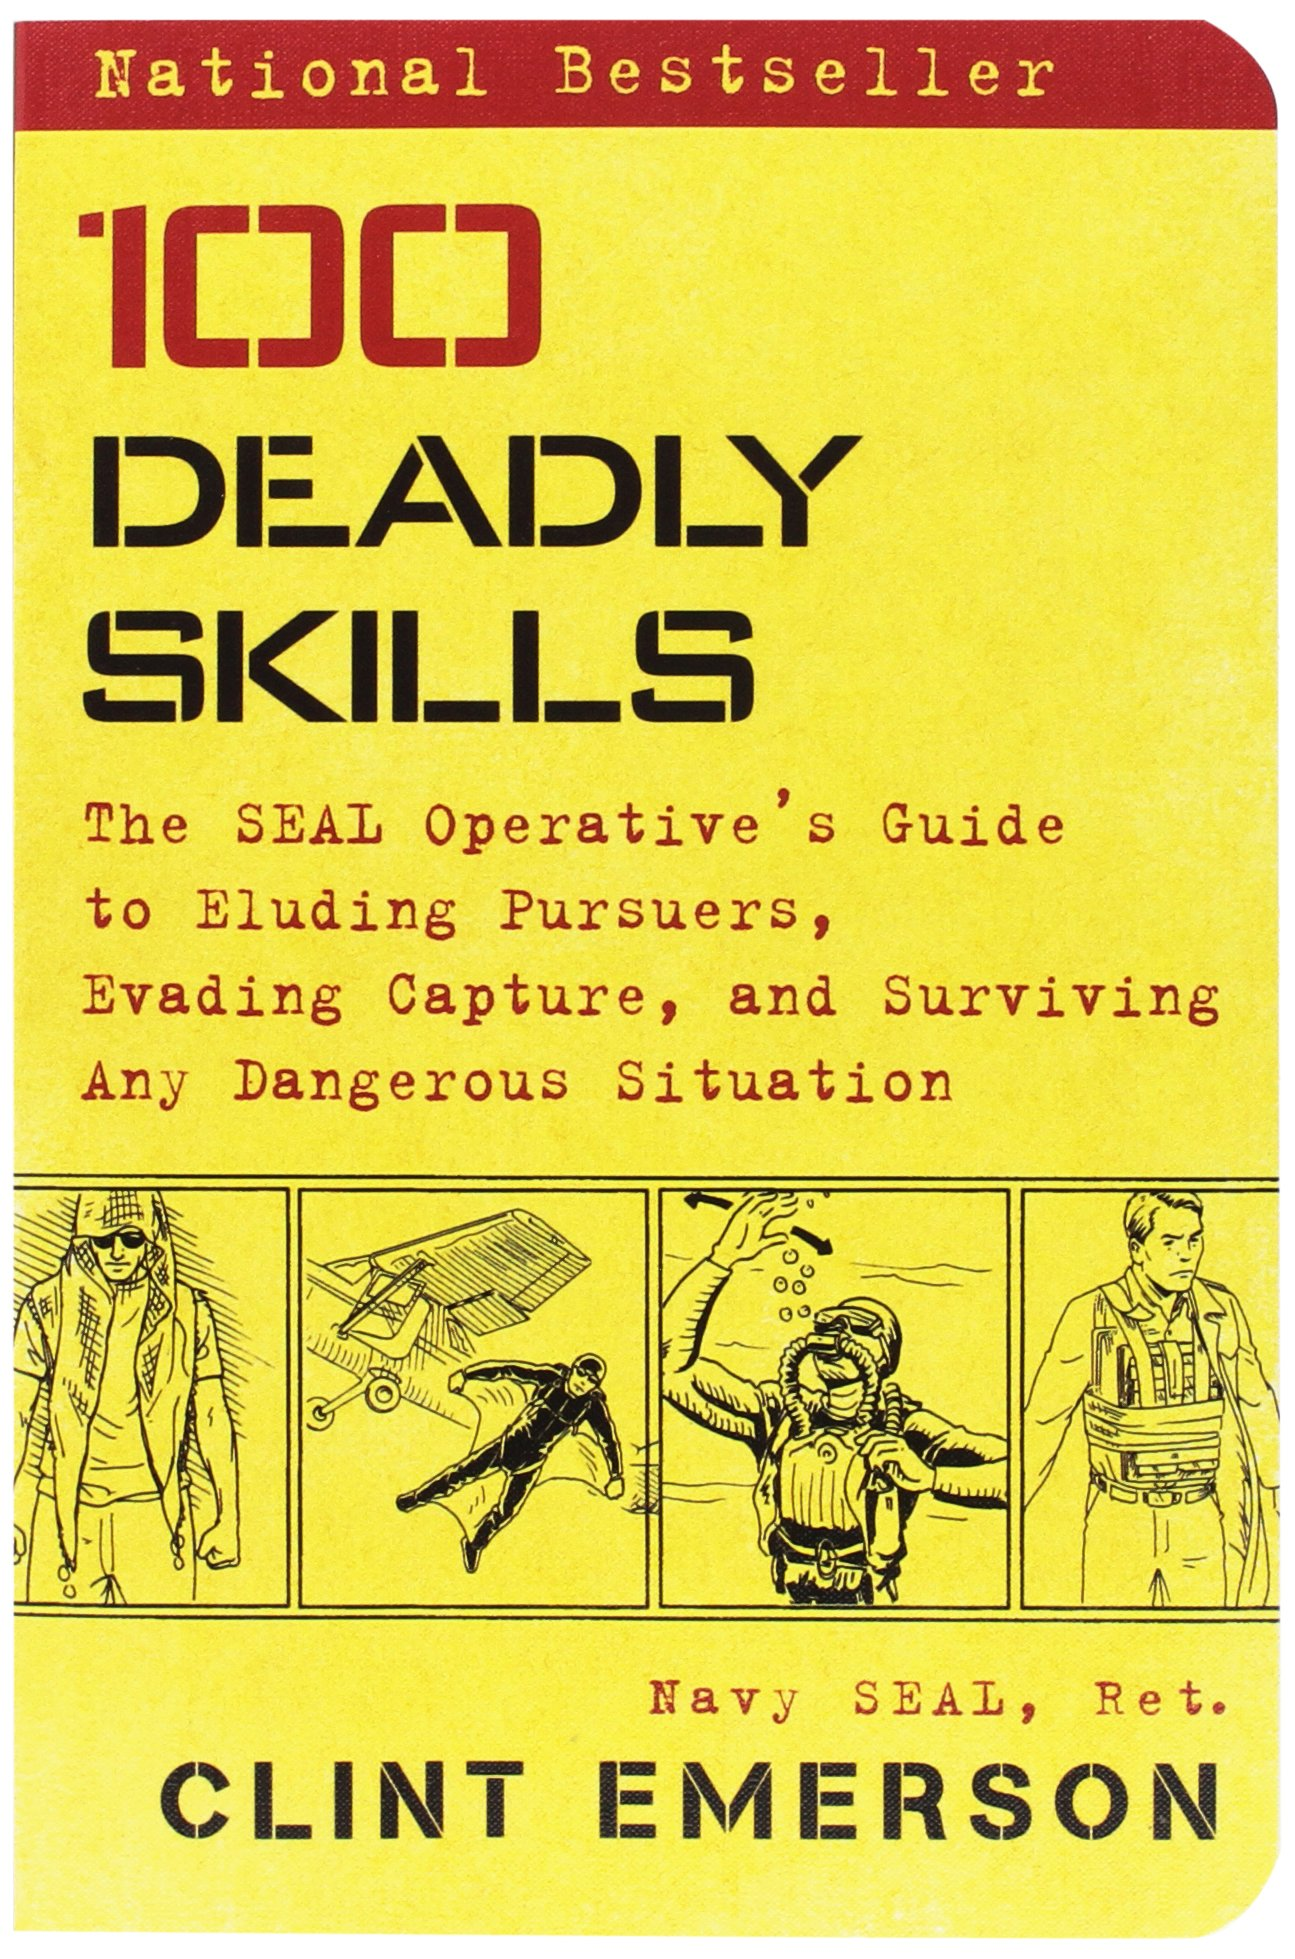 100 Deadly Skills Operatives Surviving product image